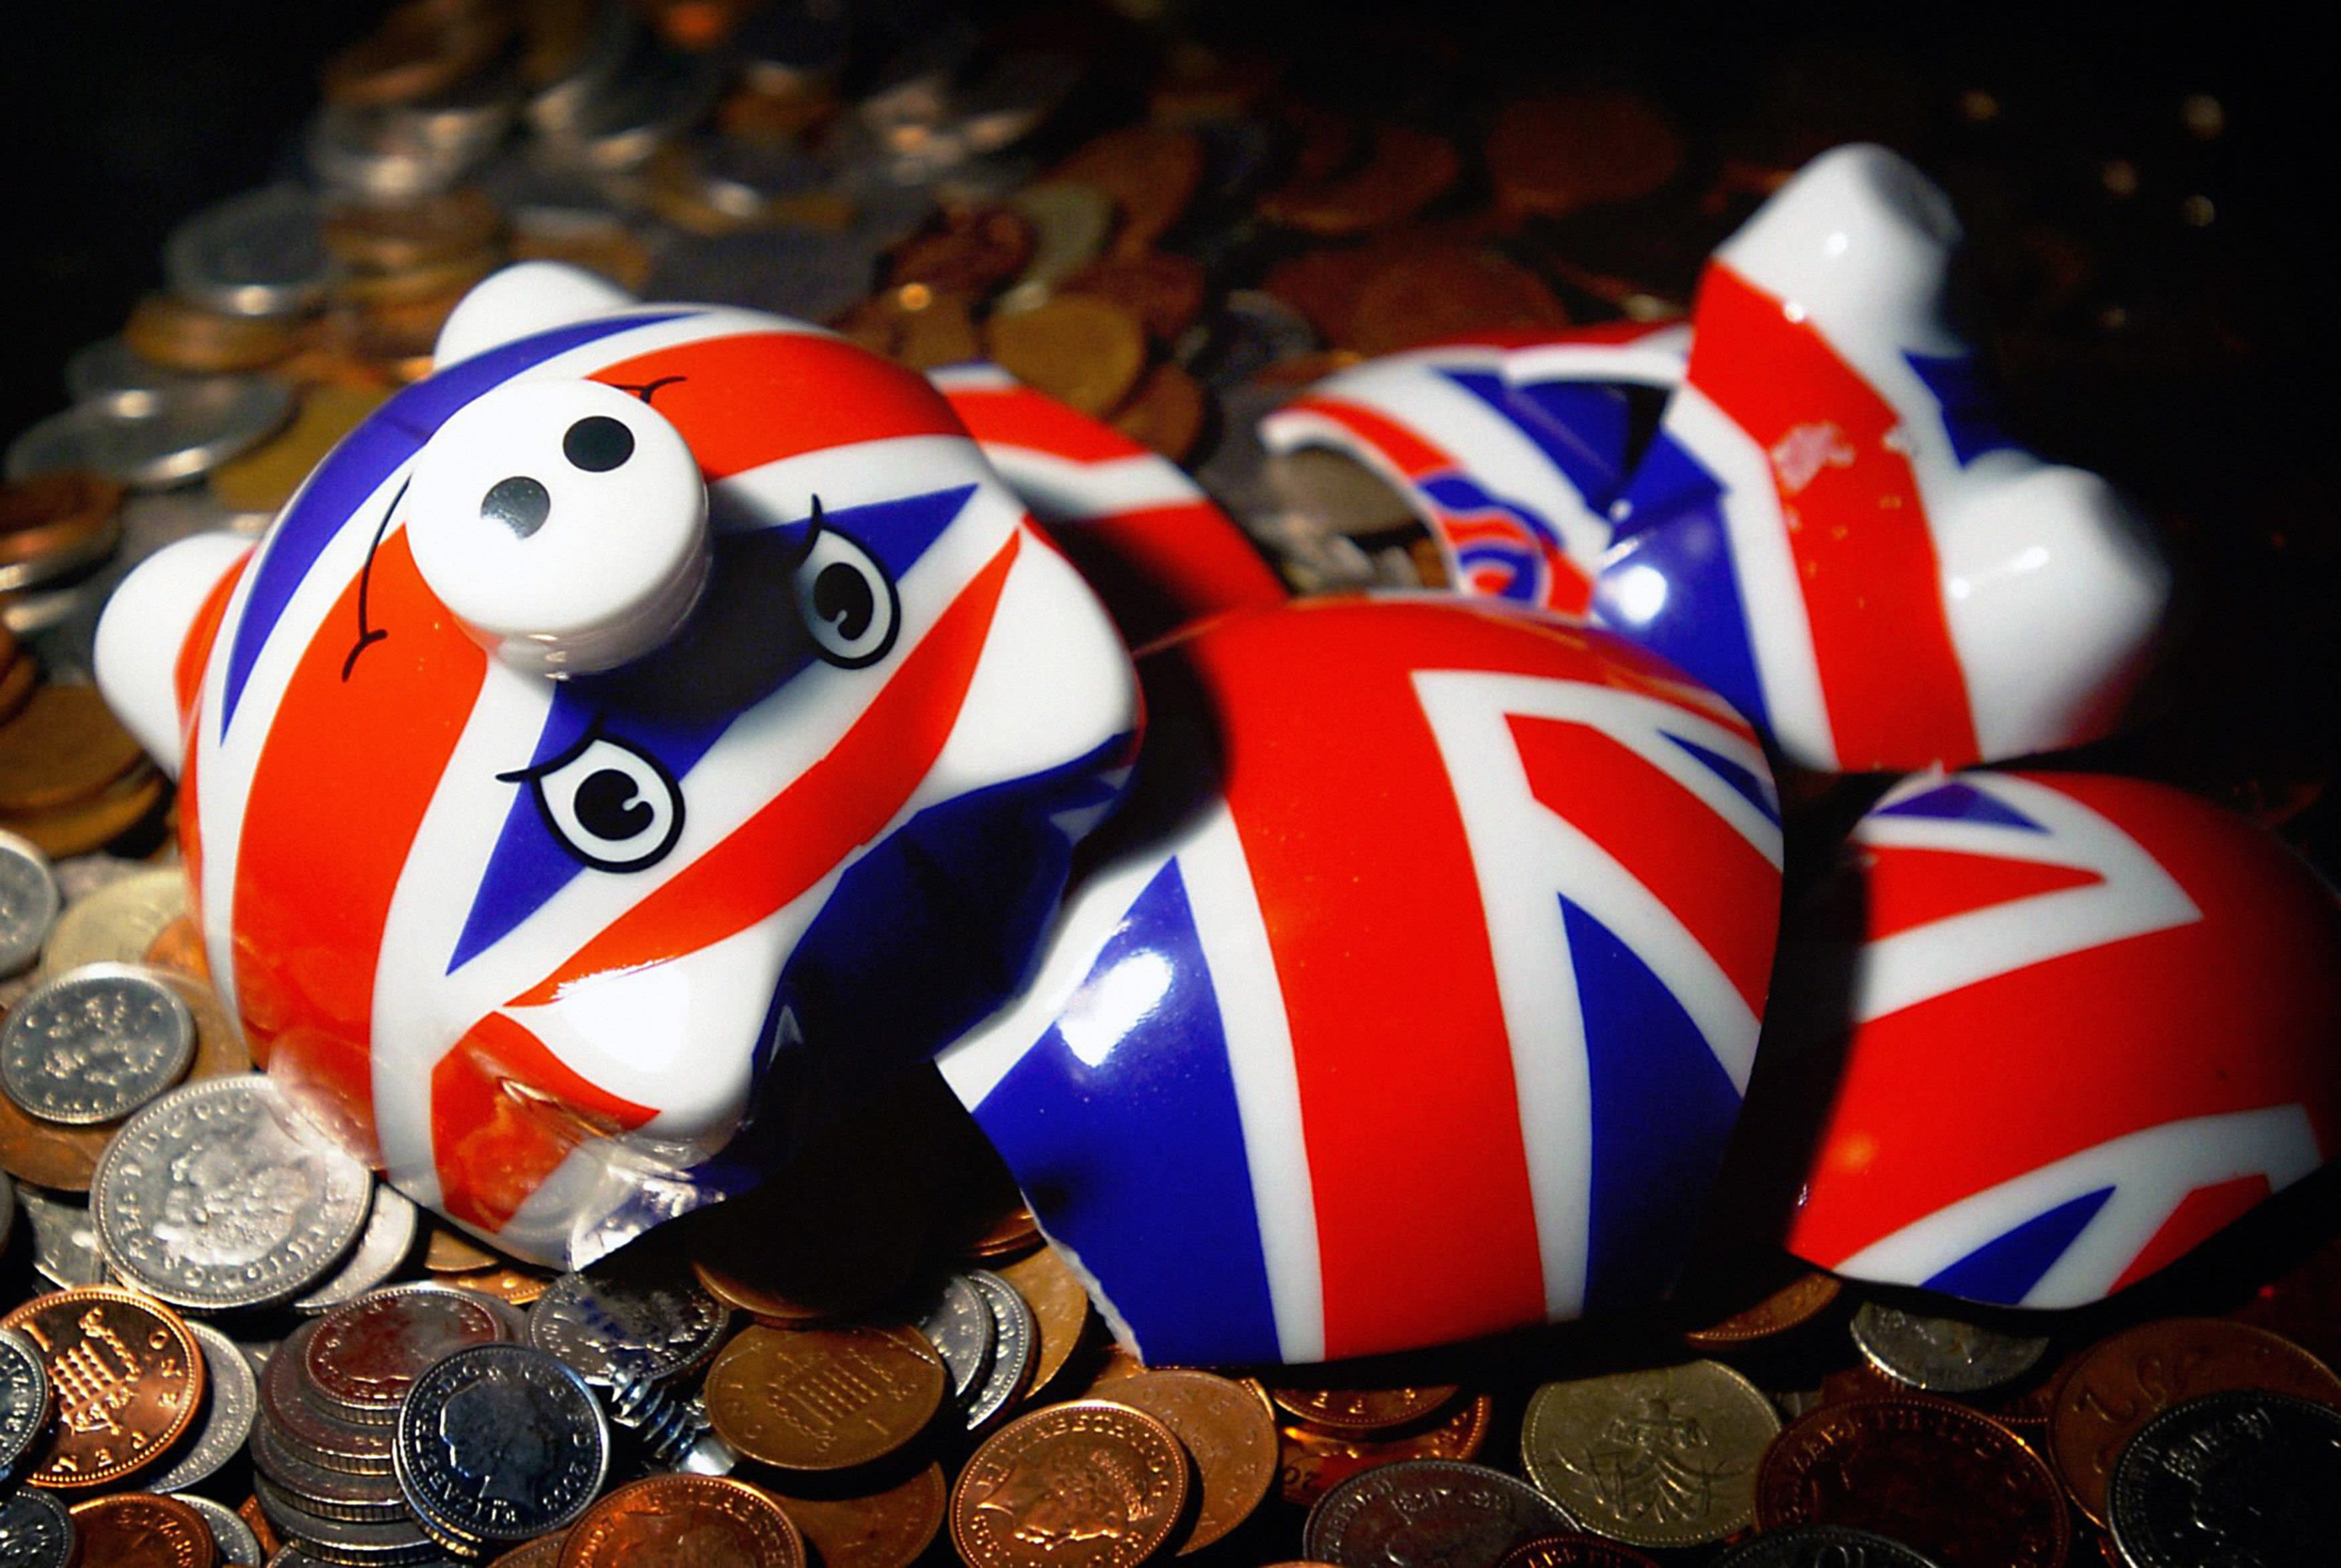 Taxes that could be tweaked to save £7bn a year